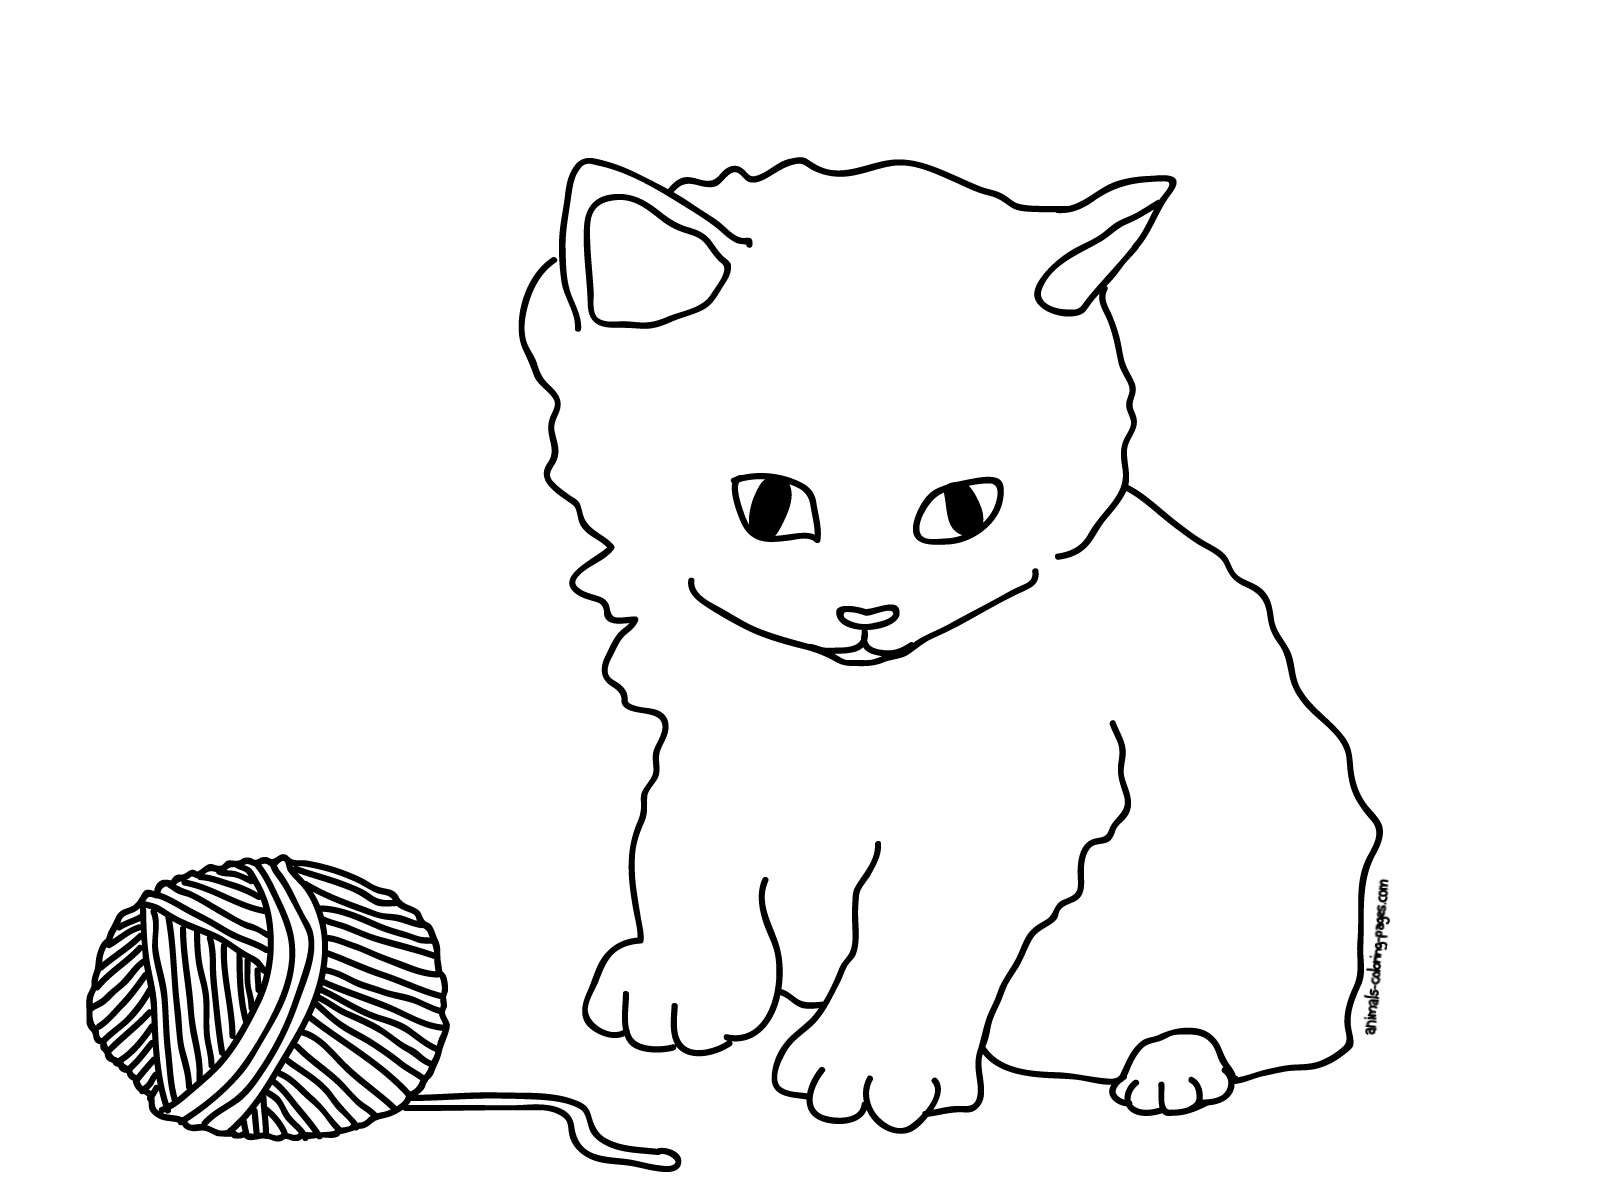 cat coloring pictures free printable cat coloring pages for kids pictures coloring cat